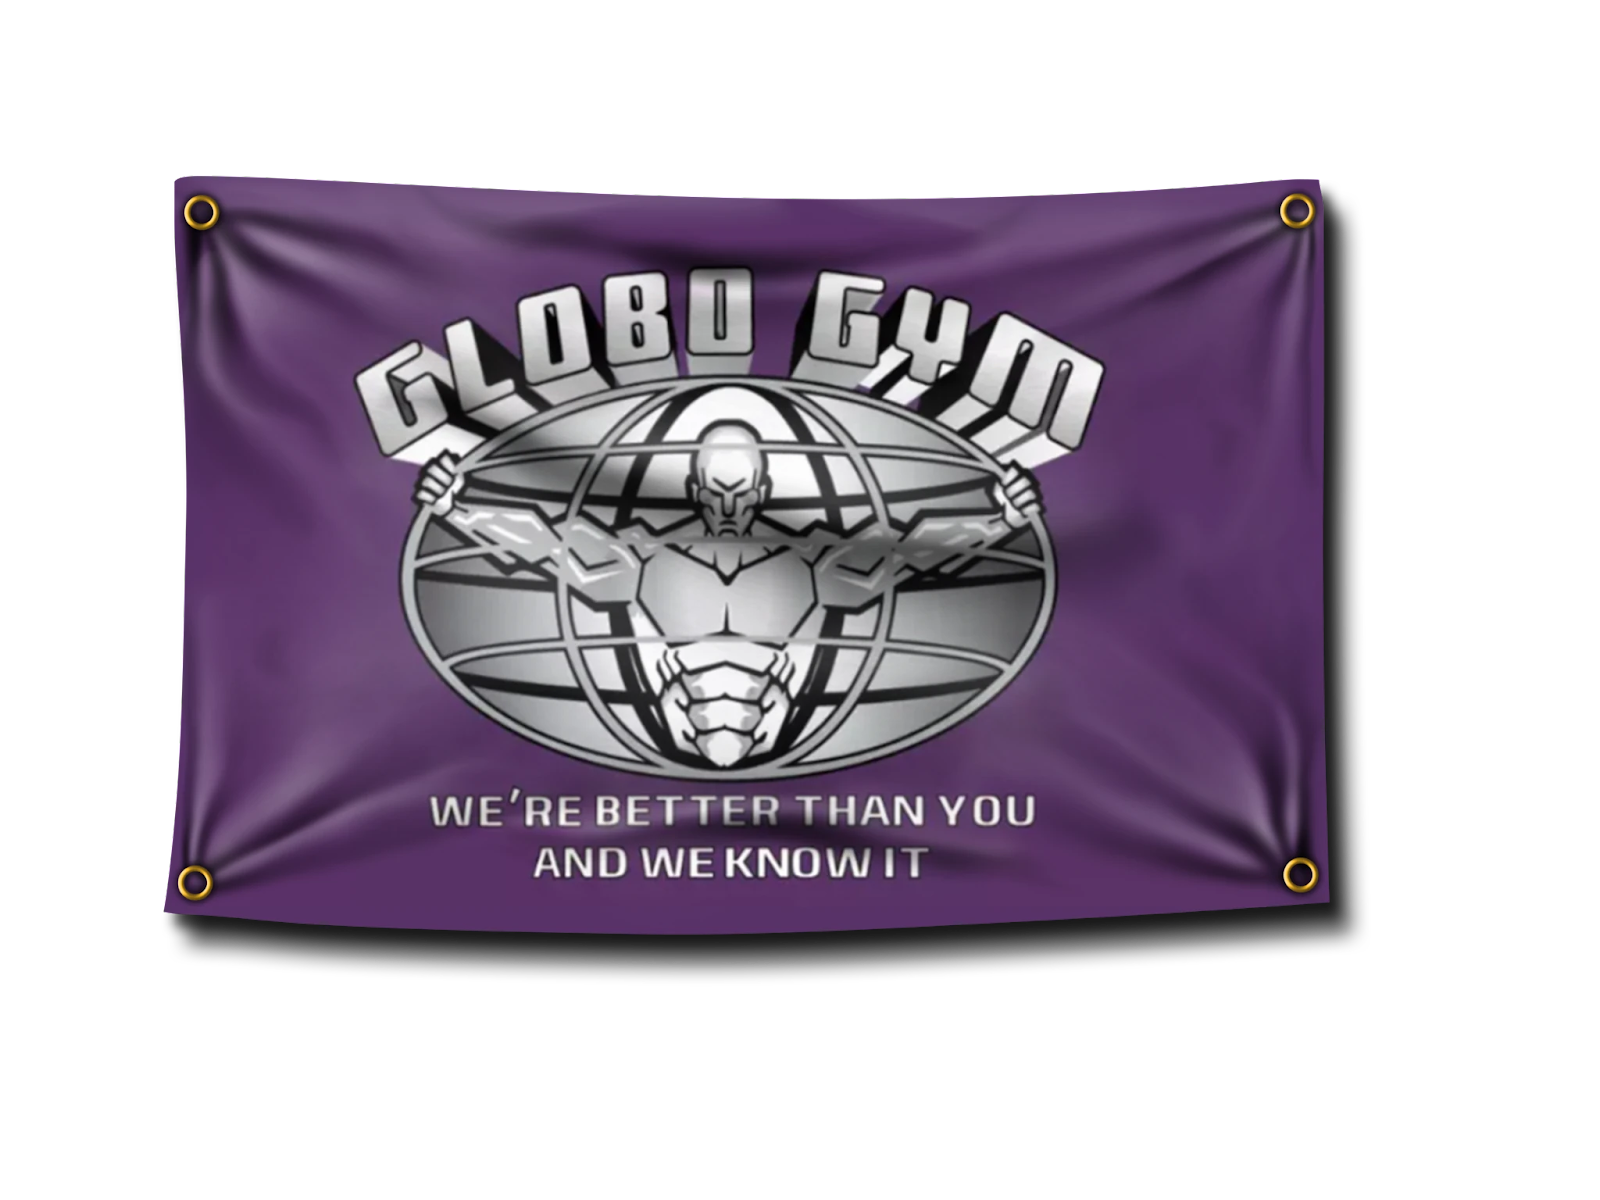 Globo Gym Dodgeball Flag Banner from one of the largest retailer in America, Banger makes a perfect decor for garage gym's entrance